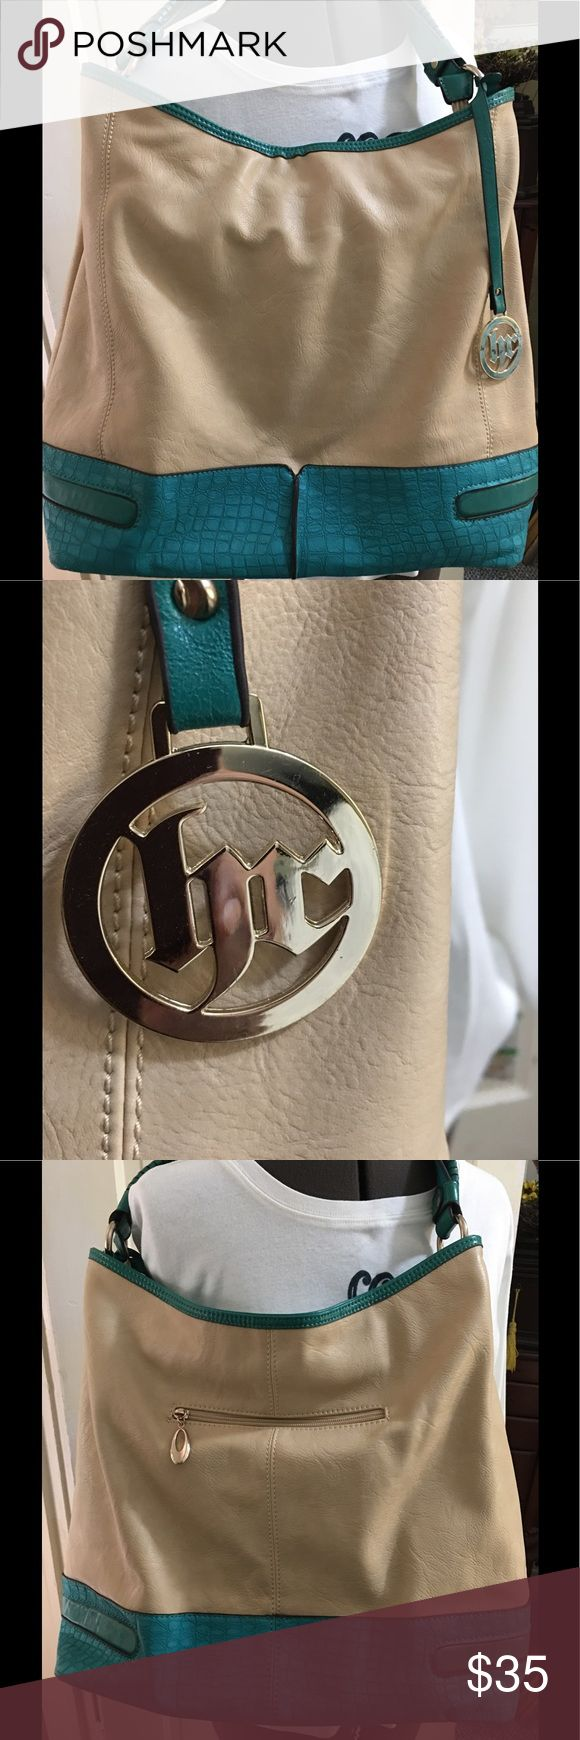 """💖Large Shoulder Bag💖💖 Very large turquoise and tan bag with one outside zippered pocket, two inside zippered pockets and two inside open pockets. Strap has an 8 1/2"""" drop which is NOT adjustable.            This bag was purchased at a handbag outlet company in Las Vegas....and had no brand name at time of purchase. Bags Shoulder Bags"""